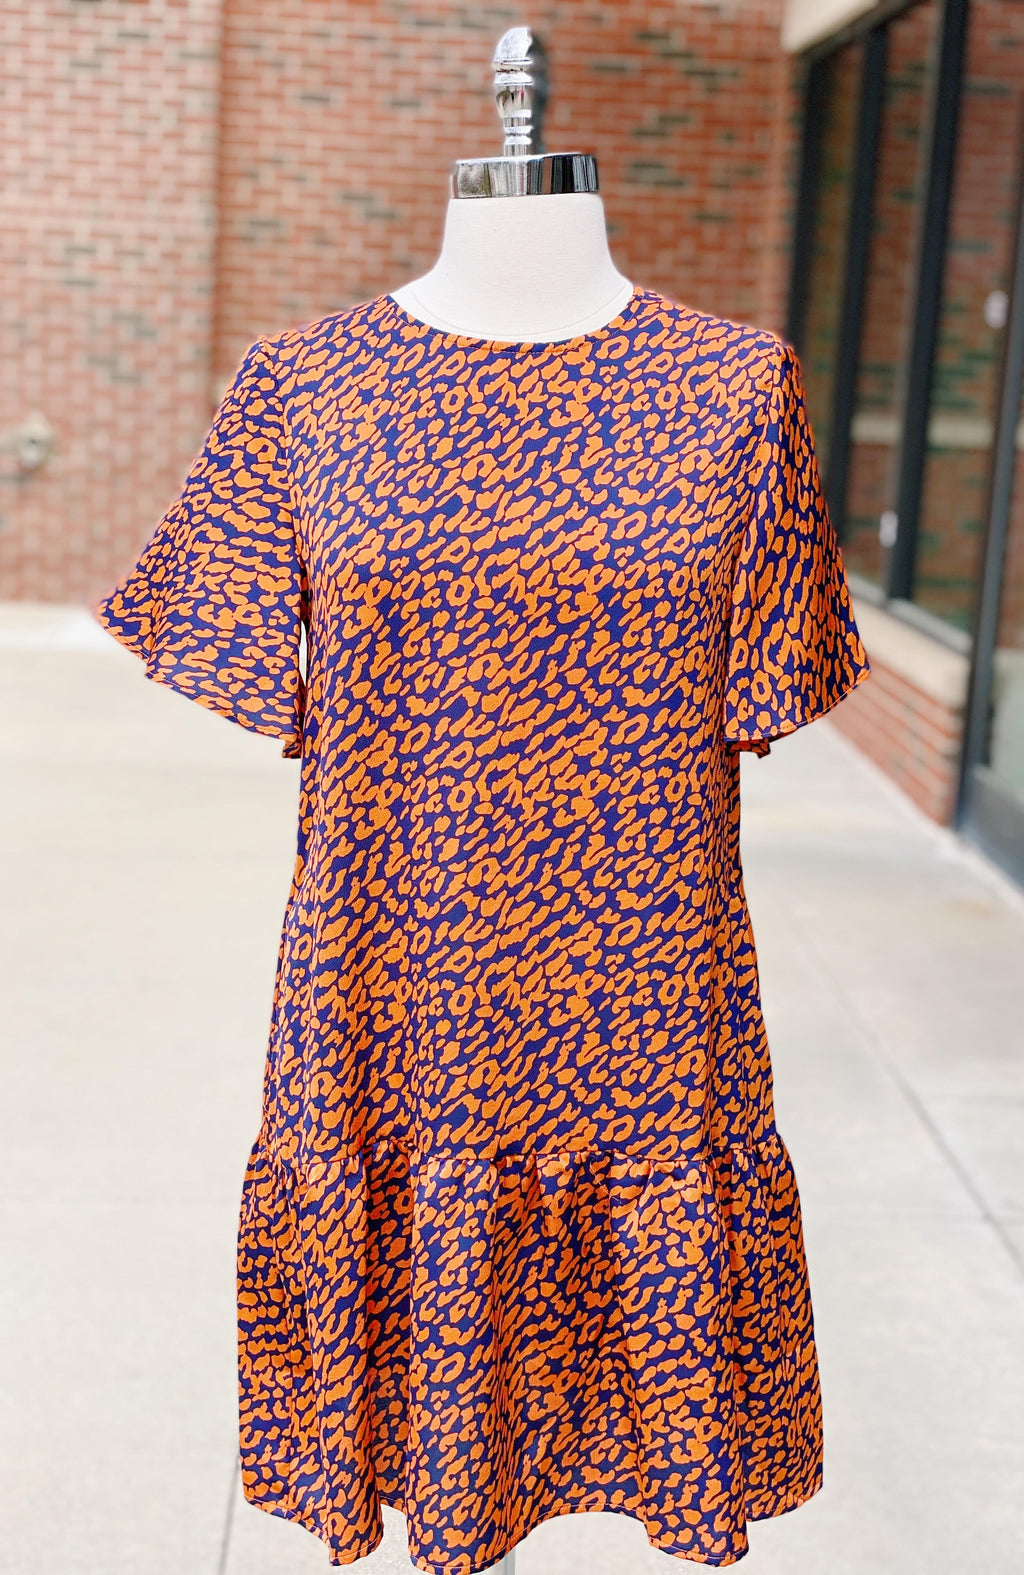 Orange Leopard Ruffled Dress